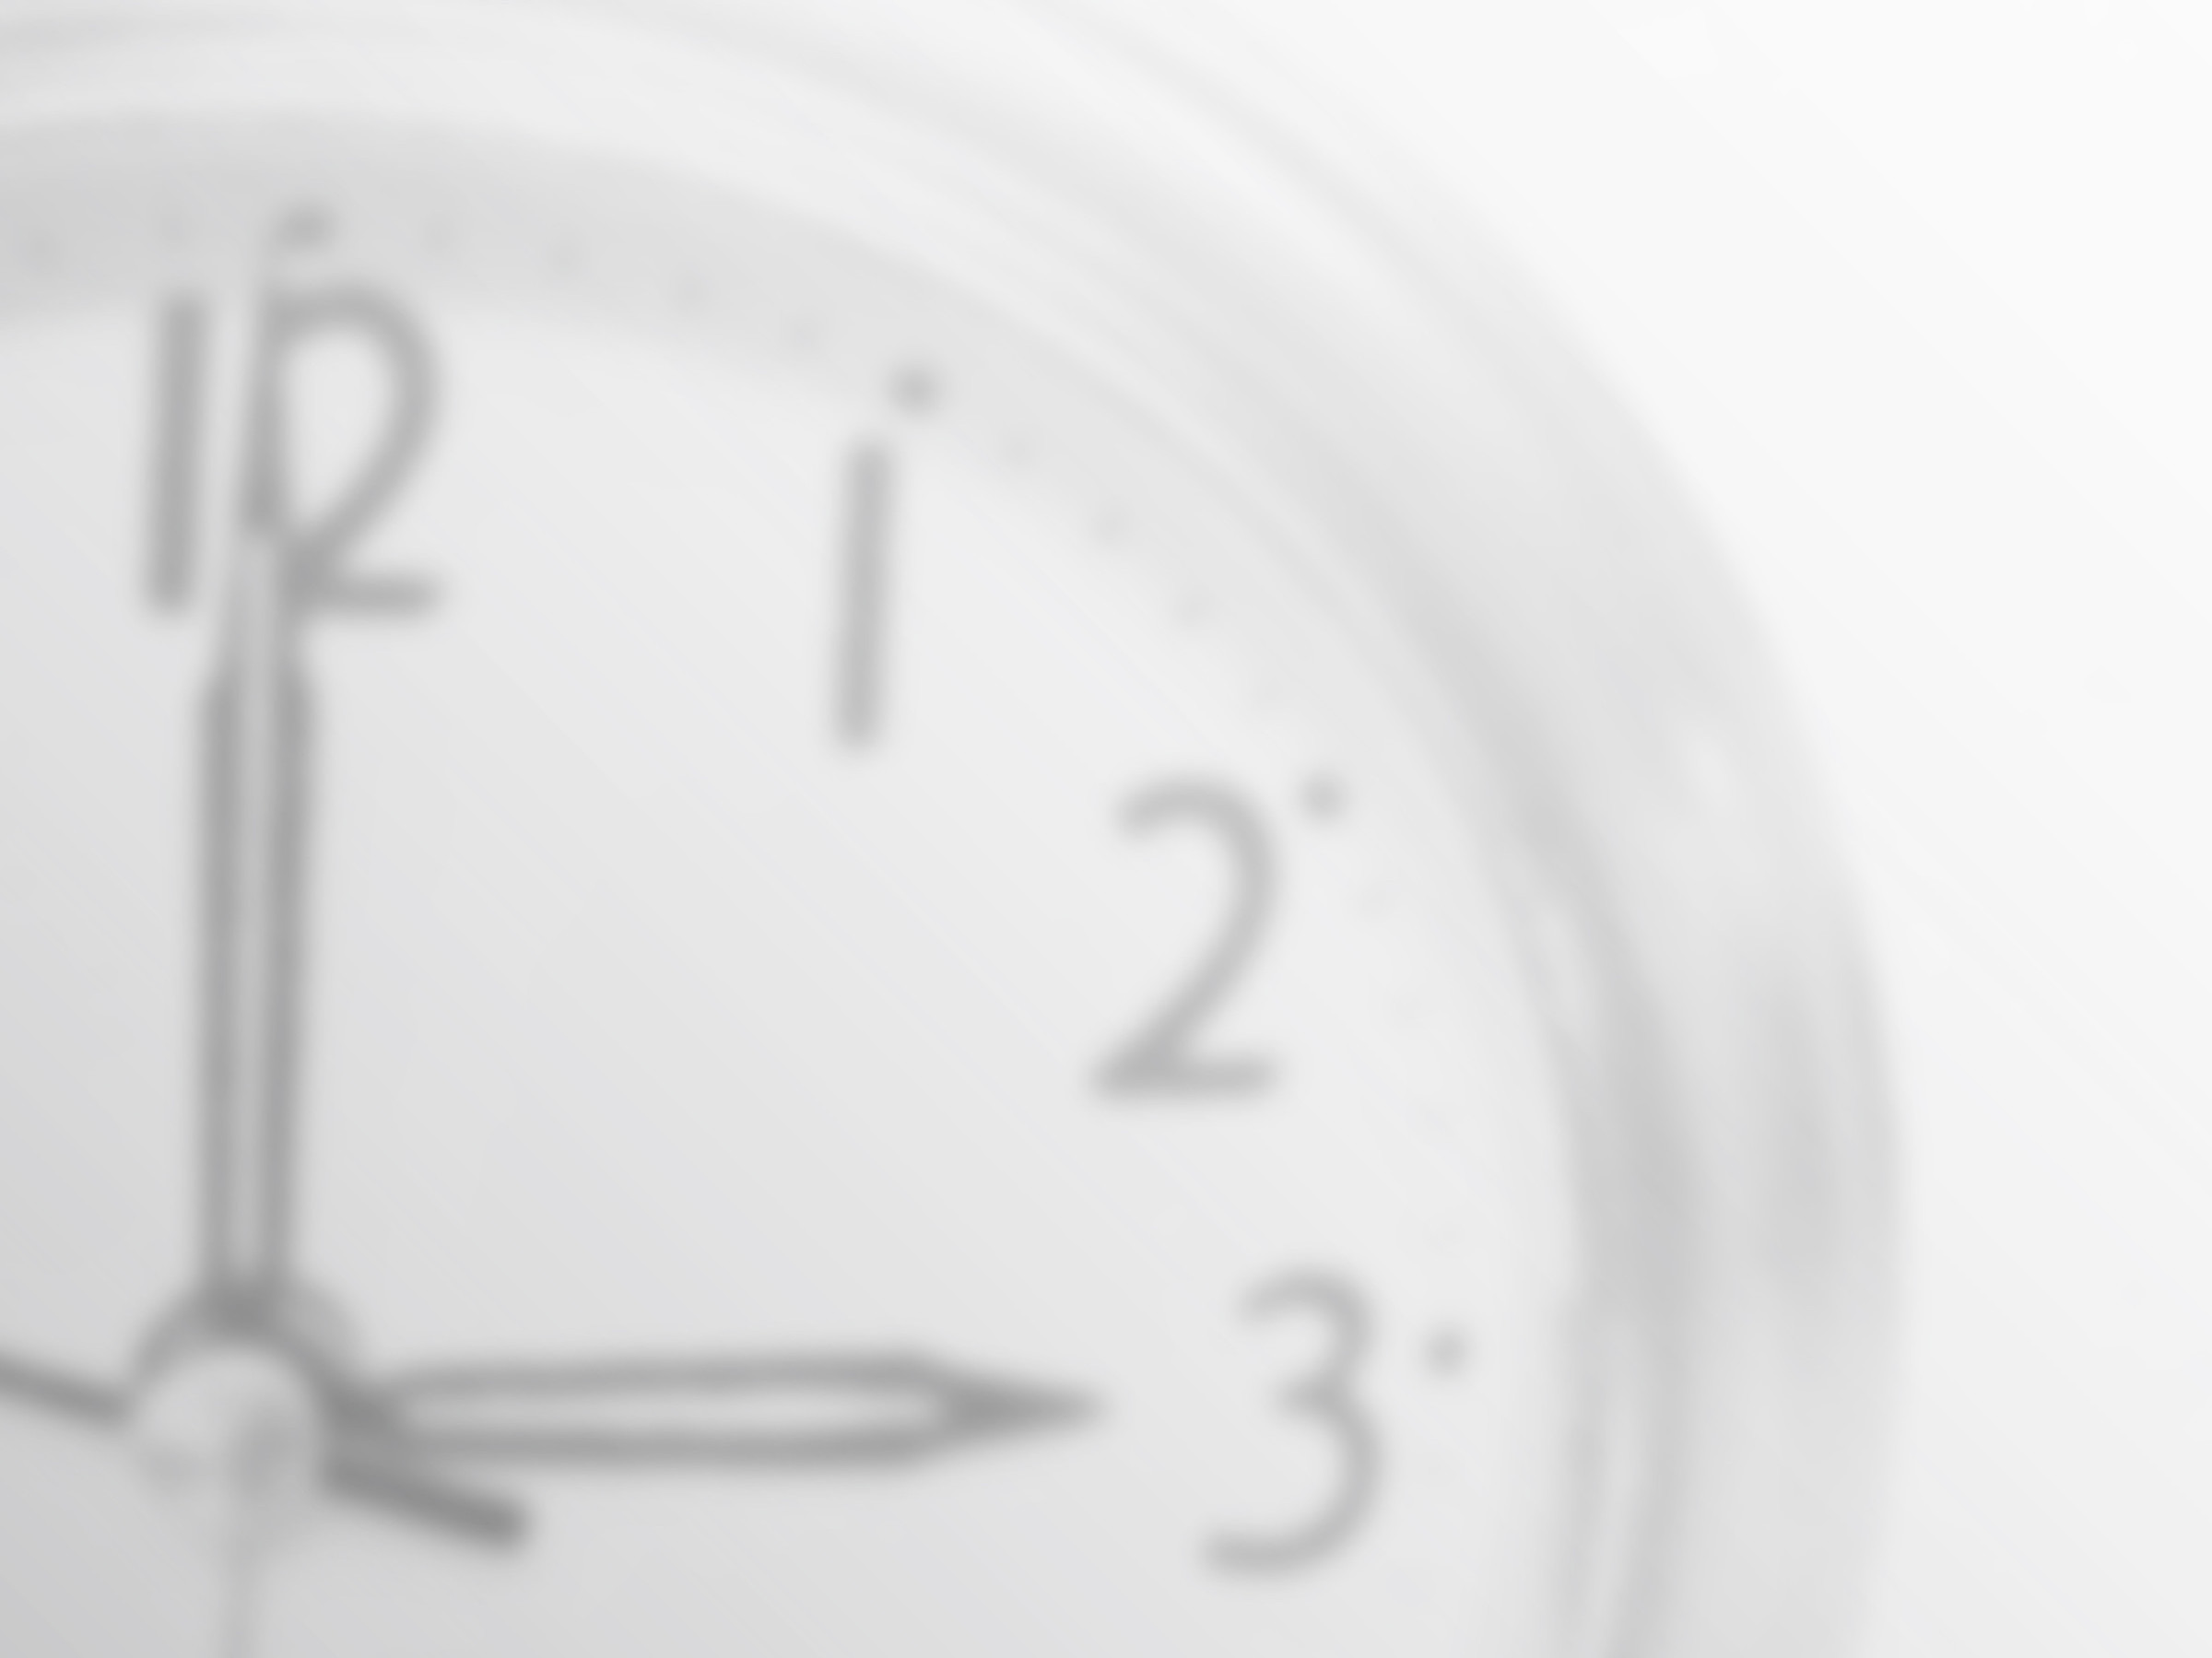 Clock Background 4 cropped